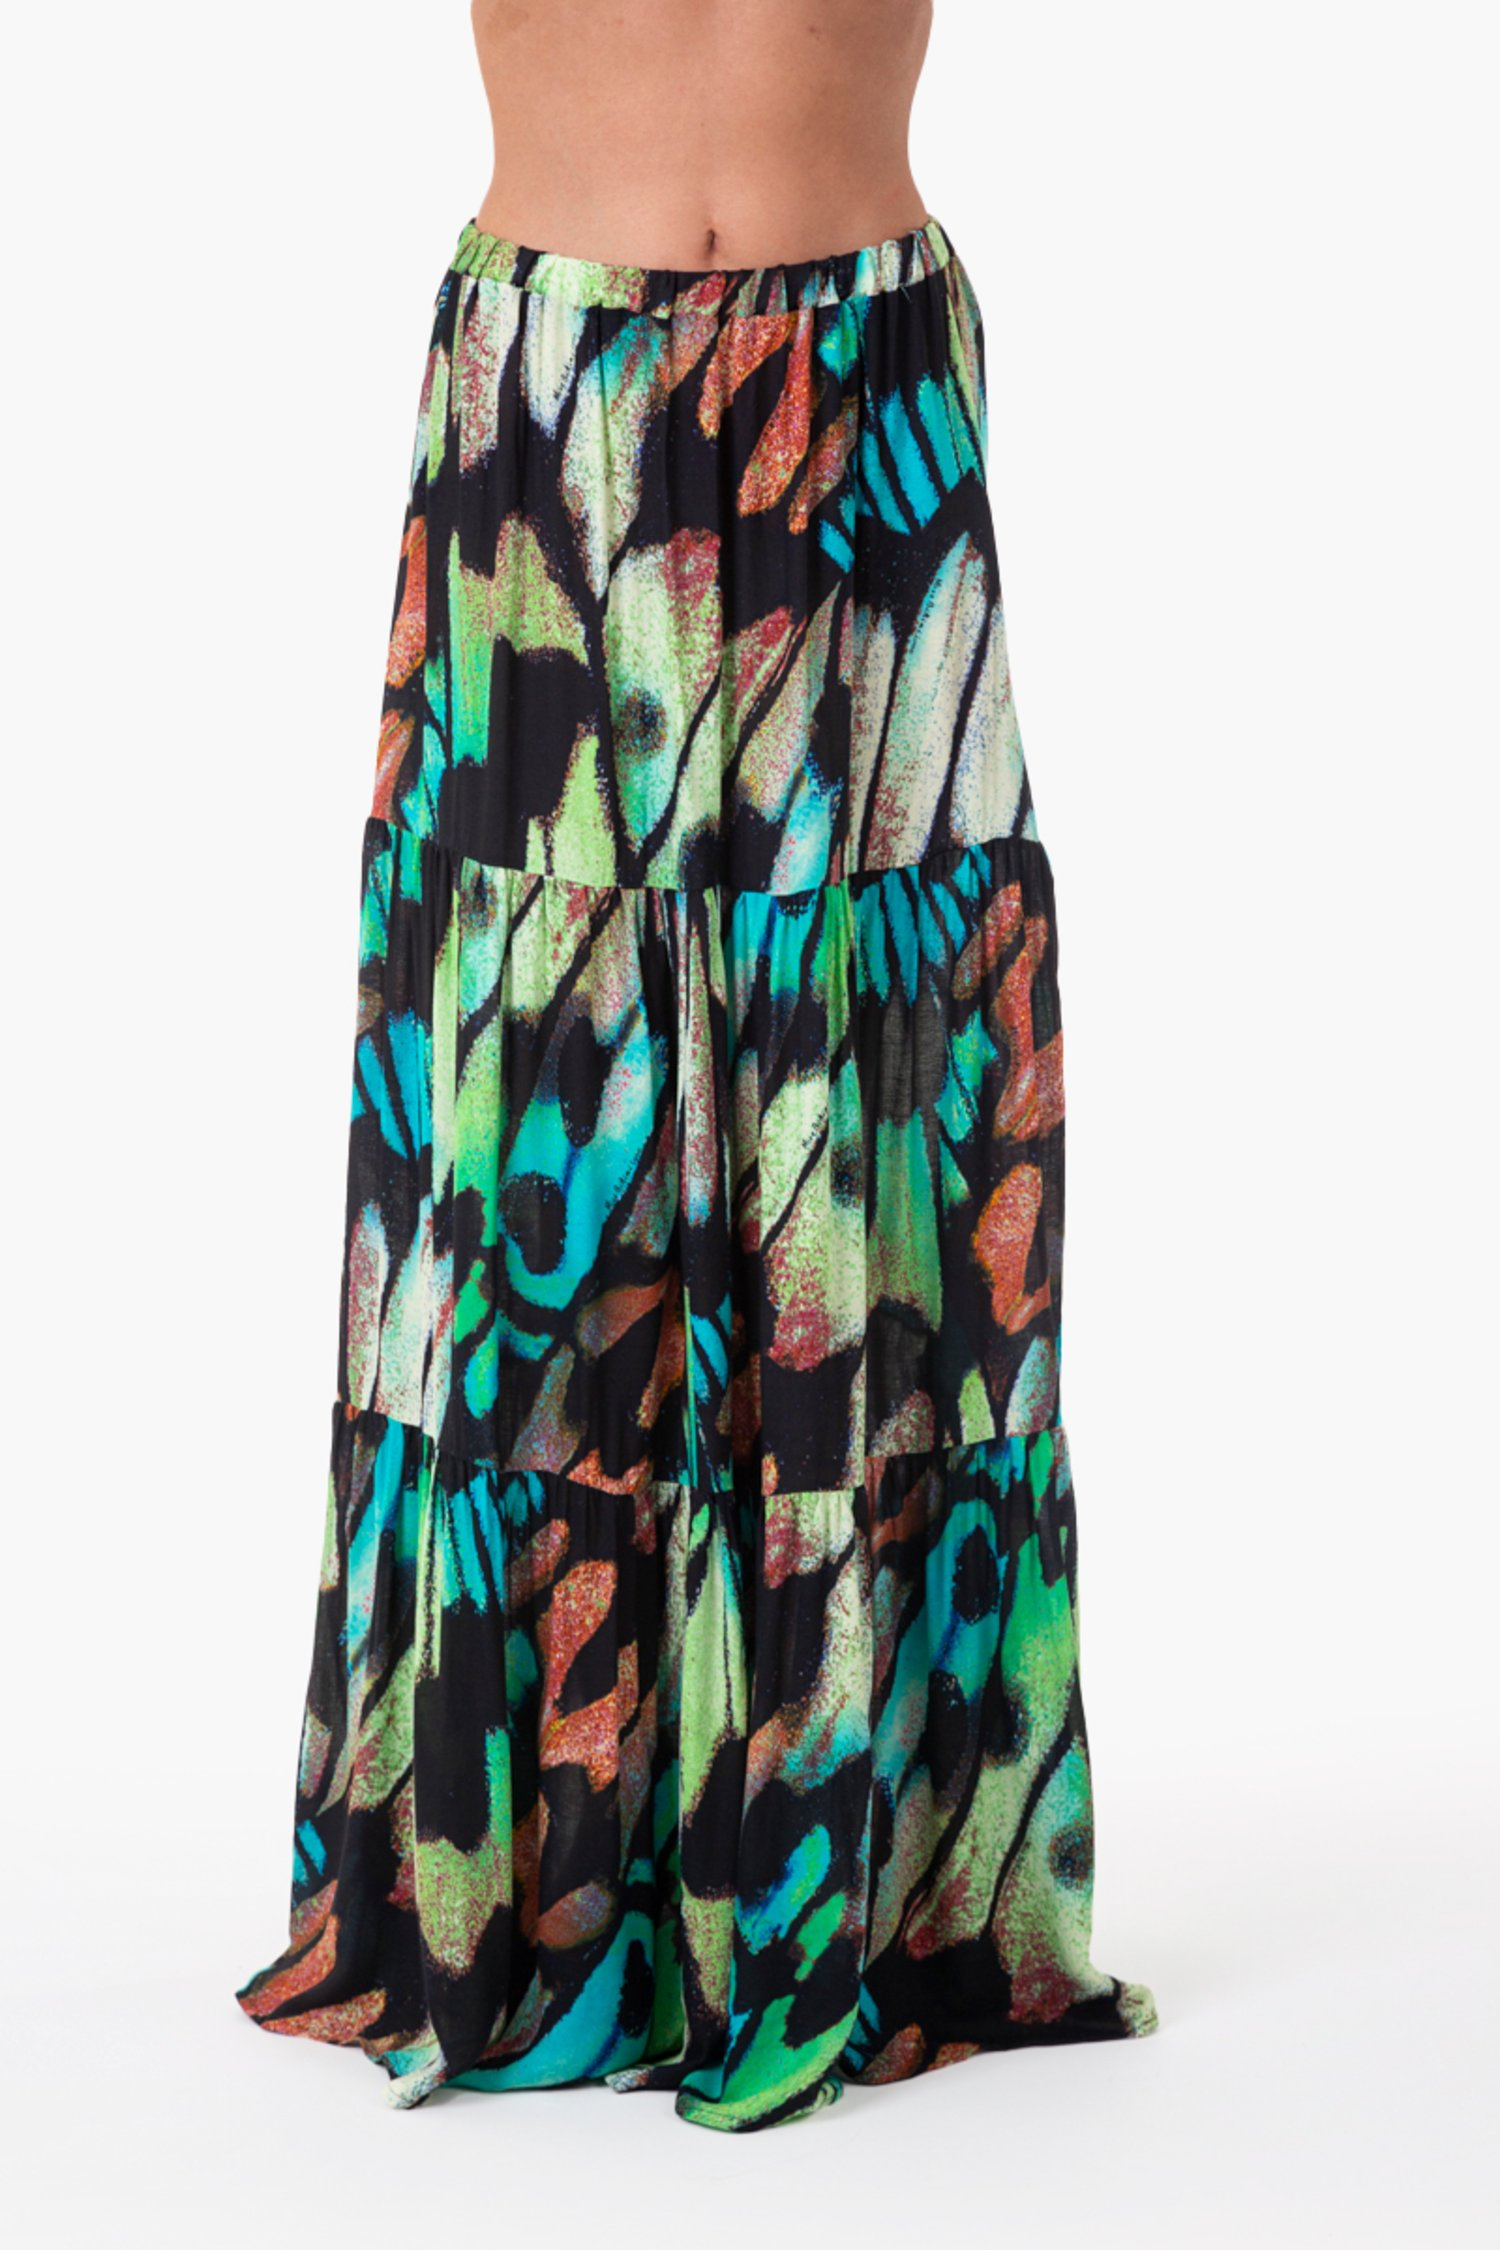 VISCOSE PRINTED LONG SKIRT - Farfalle Blu